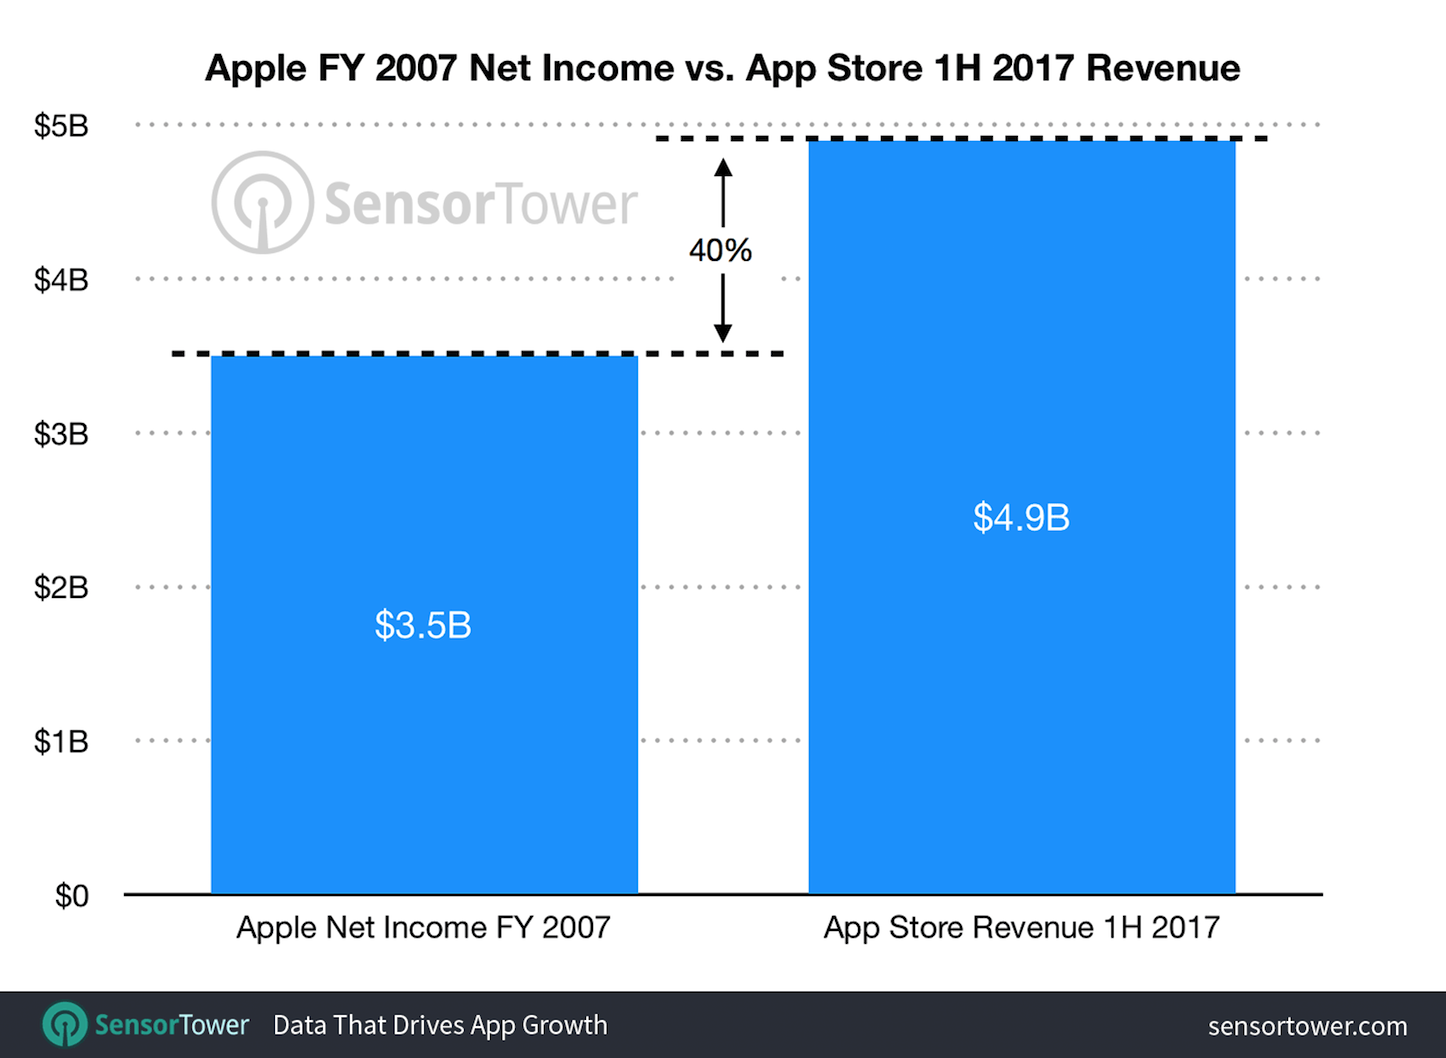 App store revenue 1H17 vs 2007